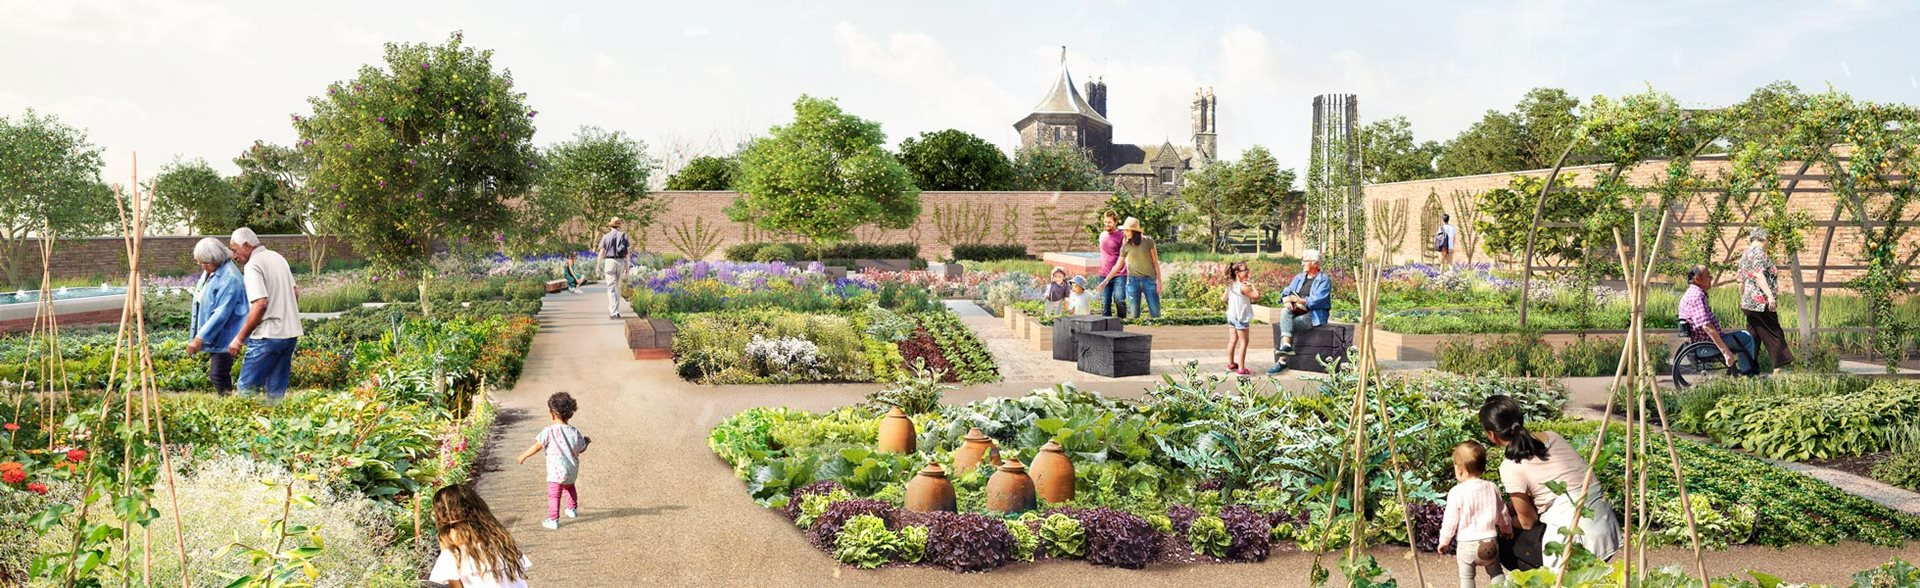 Artist impression of the Kitchen Garden, Weston Walled Garden, RHS Garden Bridgewater